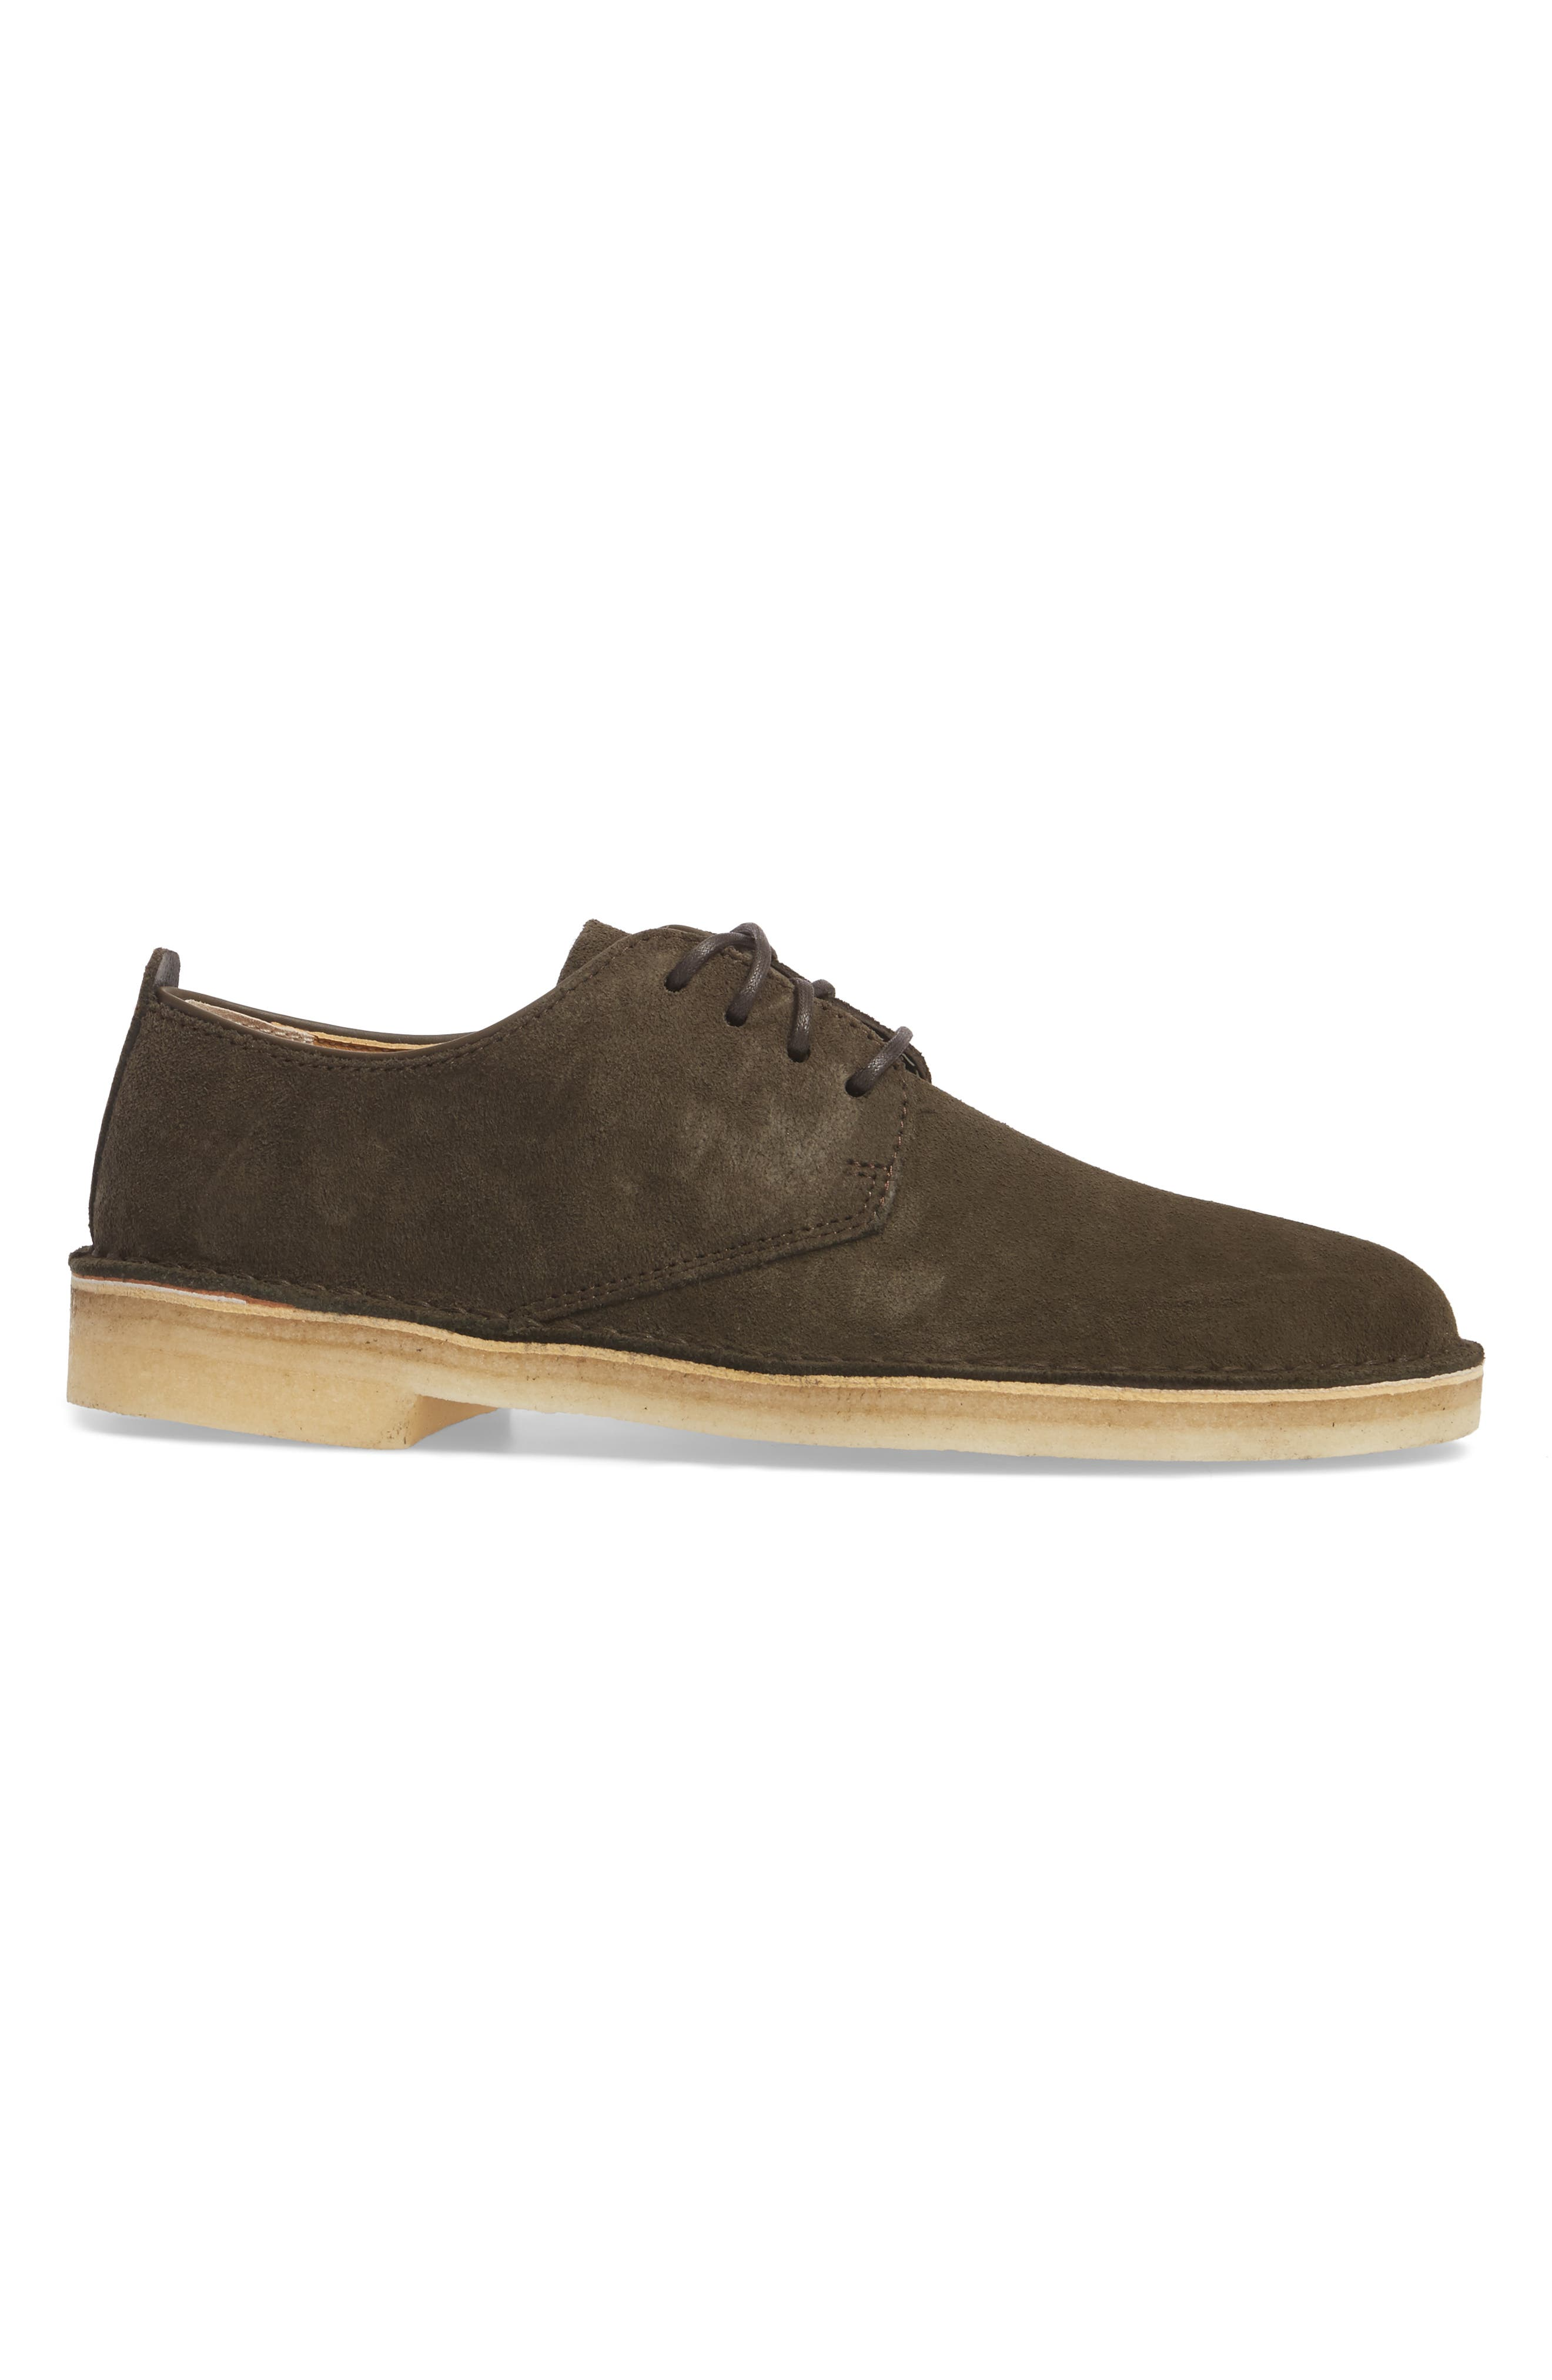 Desert London Suede Plain Toe Derby,                             Alternate thumbnail 3, color,                             Peat Suede